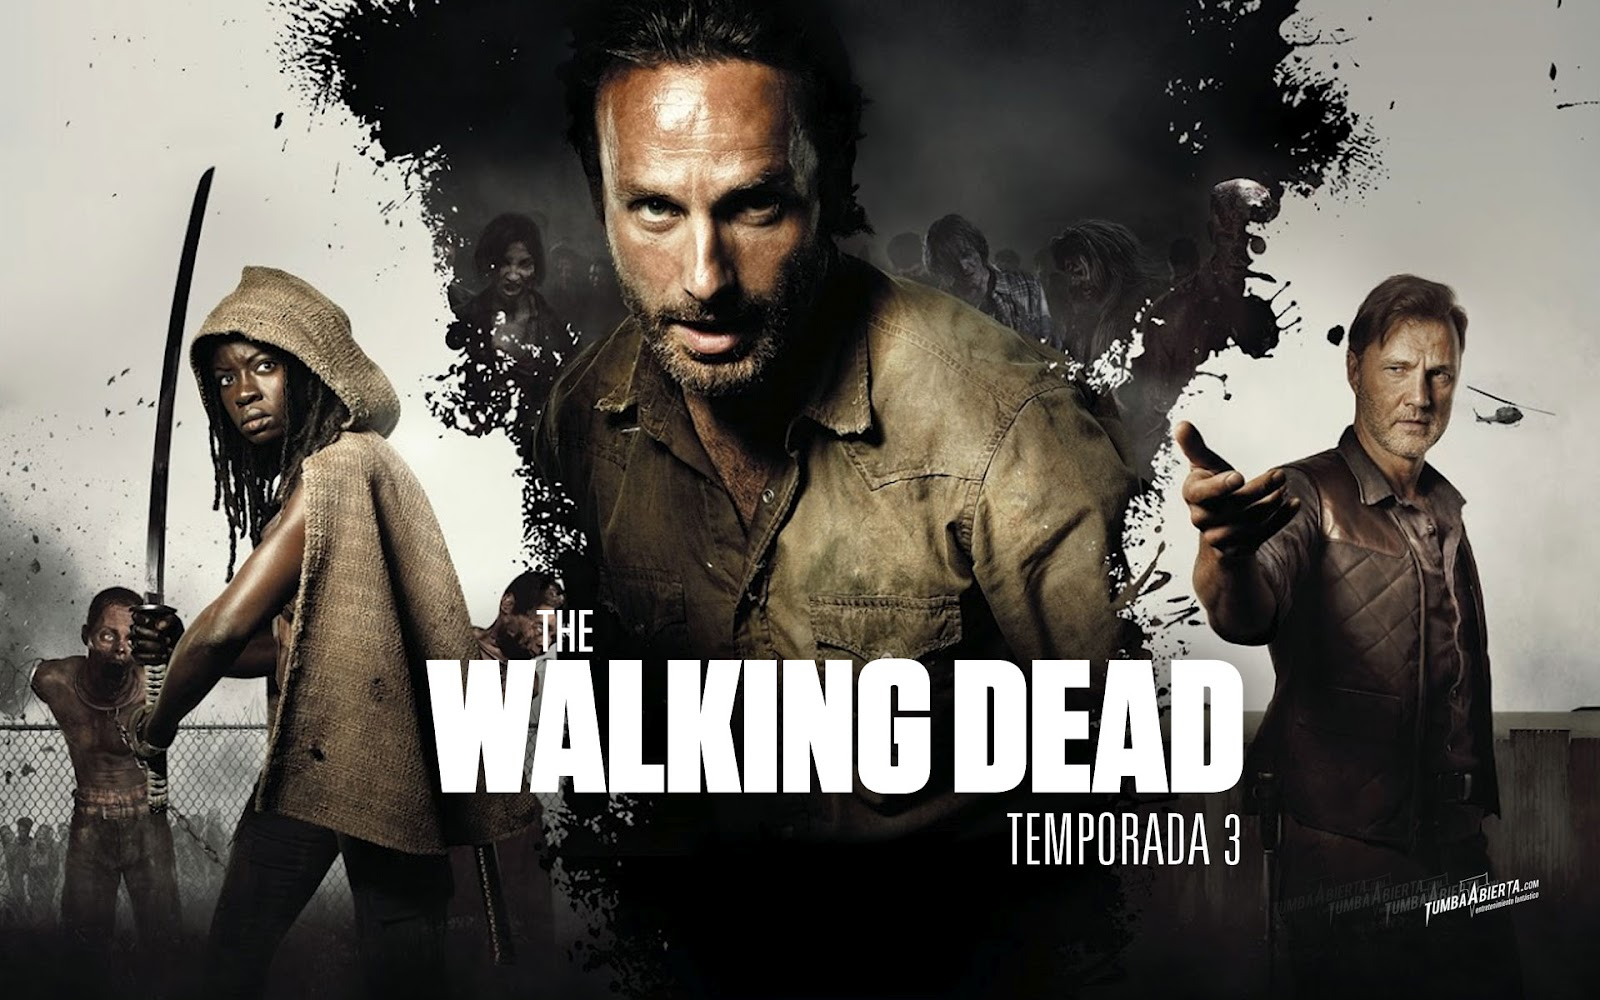 THE WALKING DEAD, TERCERA TEMPORADA, CAPITULO